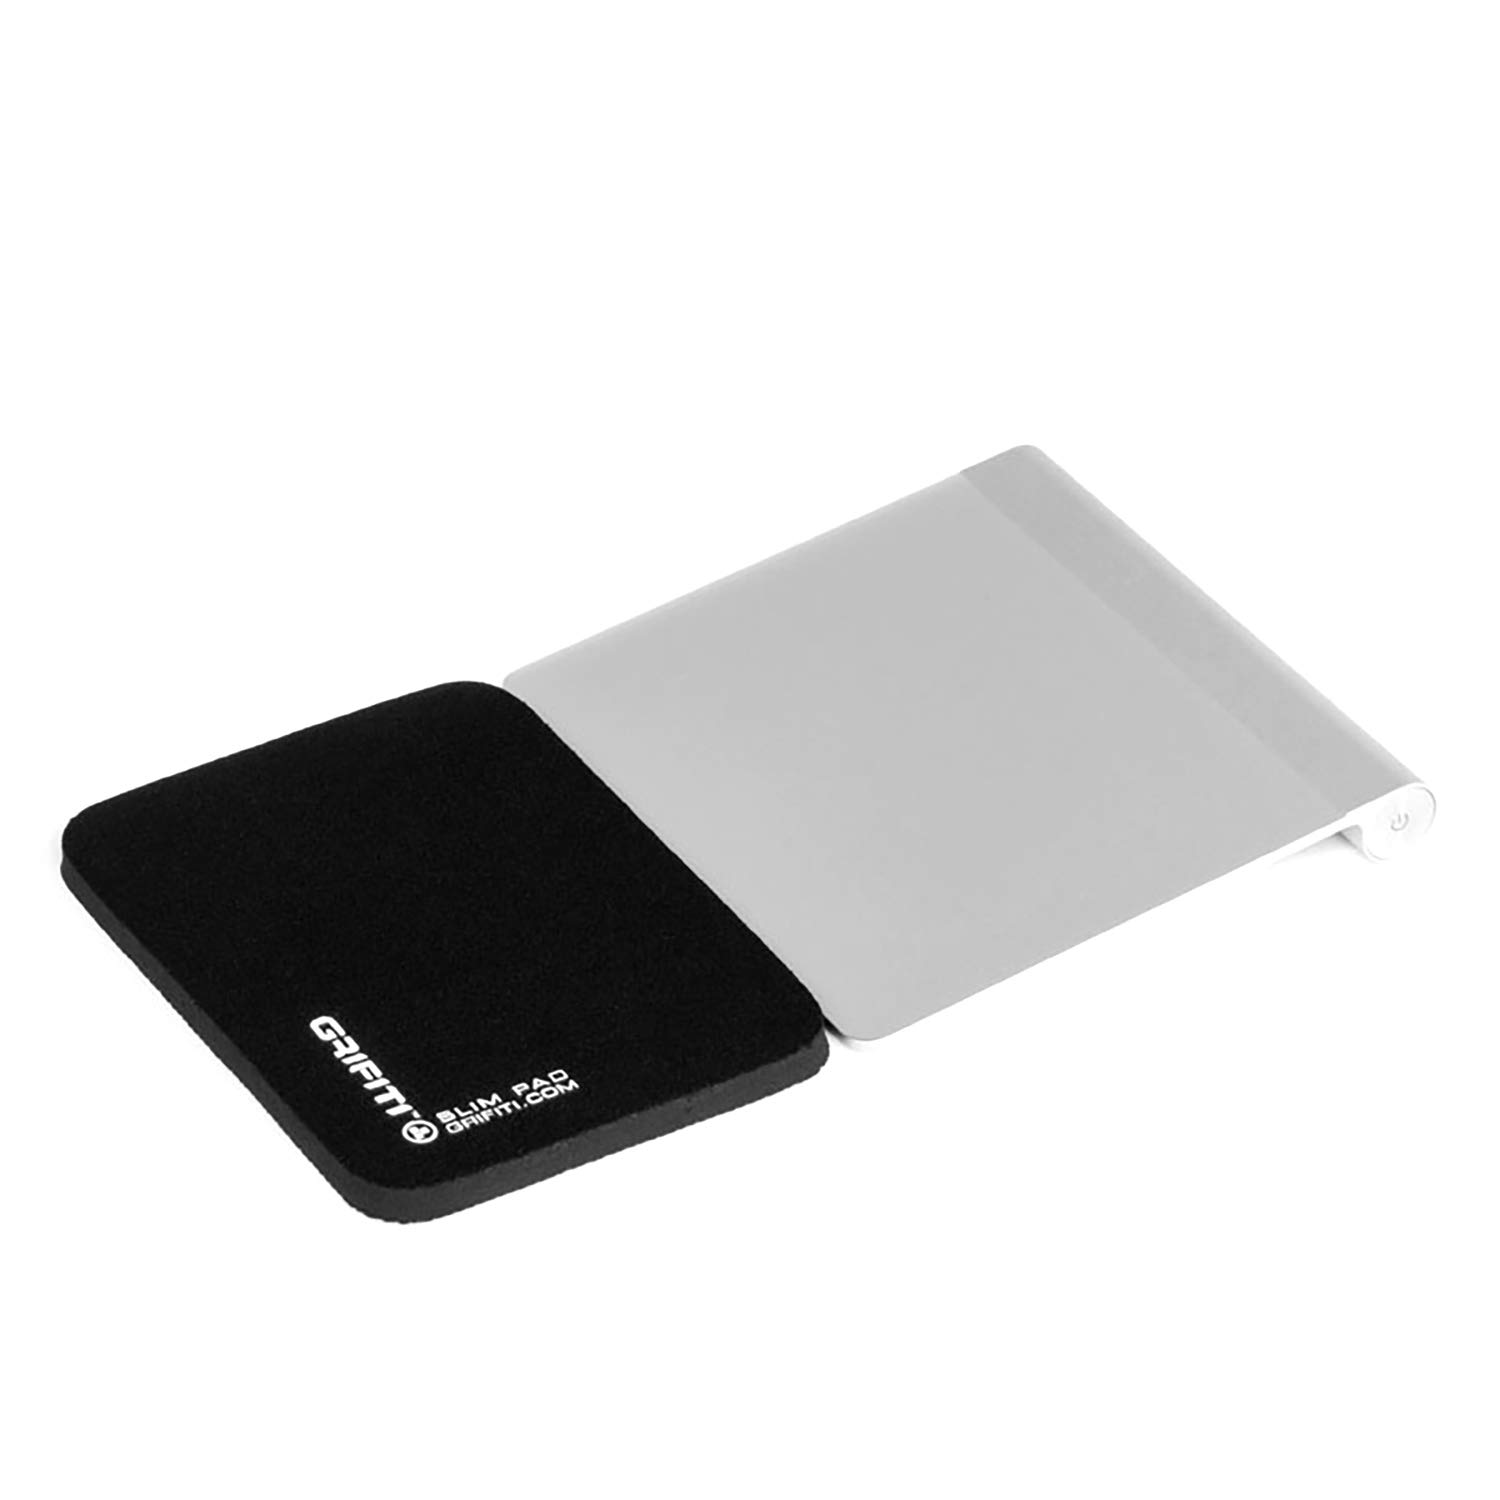 Grifiti Slim Wrist Pad 5 5 x 4 x 0.25 Smooth Skin Surface (No Nylon) and Non-Skid Base Wrist Rest for Apple® Magic Trackpad, Mobee Numpad, Power Bar, Meshwe, Logitech, Anker, Perixx, GMYLE, Macally, Rupoo, SIIG, Azio Mouse Wrist Rest Mice Keypads 24051